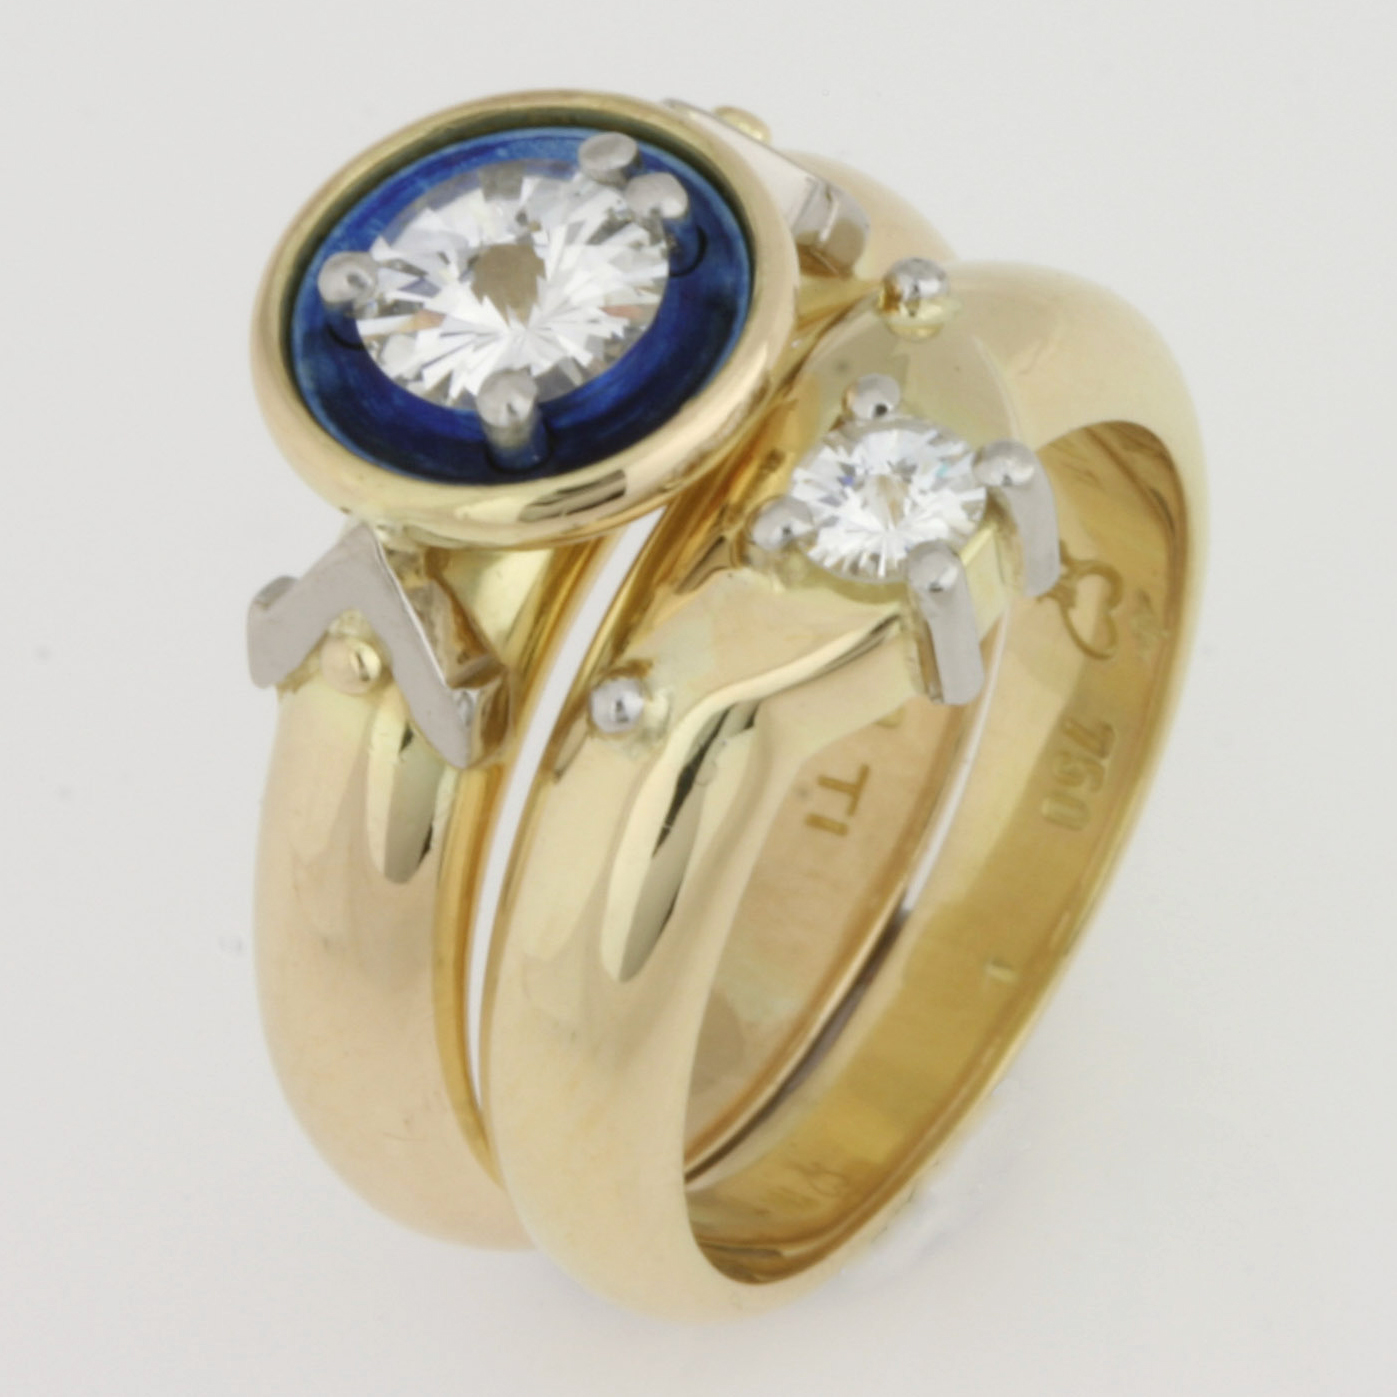 Handmade ladies 18ct yellow and white gold and titanium 'Spirit' cut diamond engagement and wedding ring set